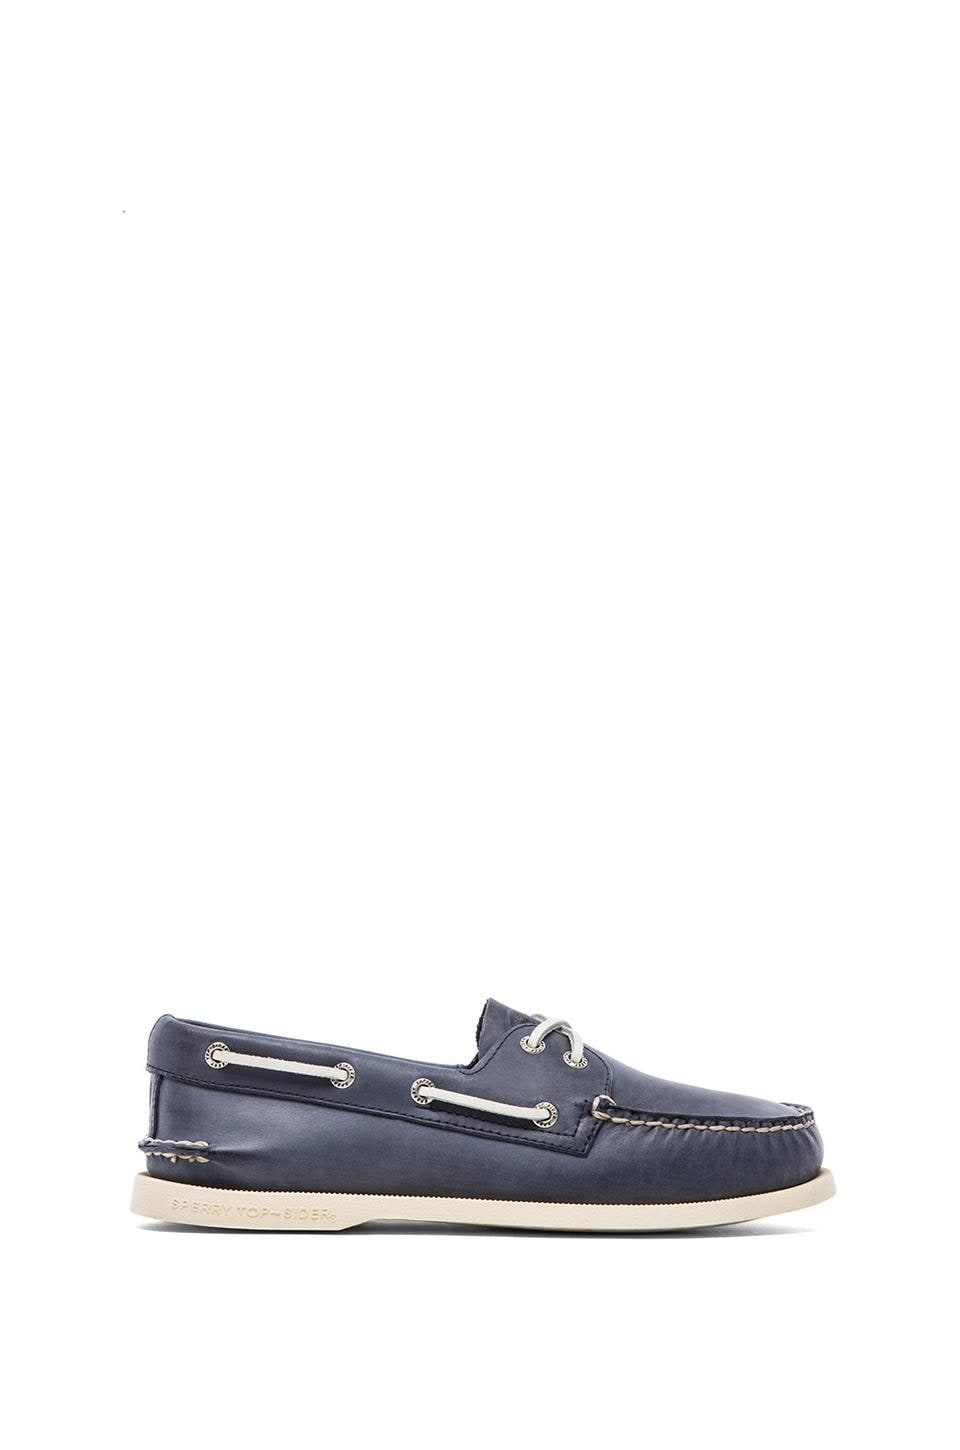 Sperry Top-Sider A/O 2-Eye Free Time in Blue